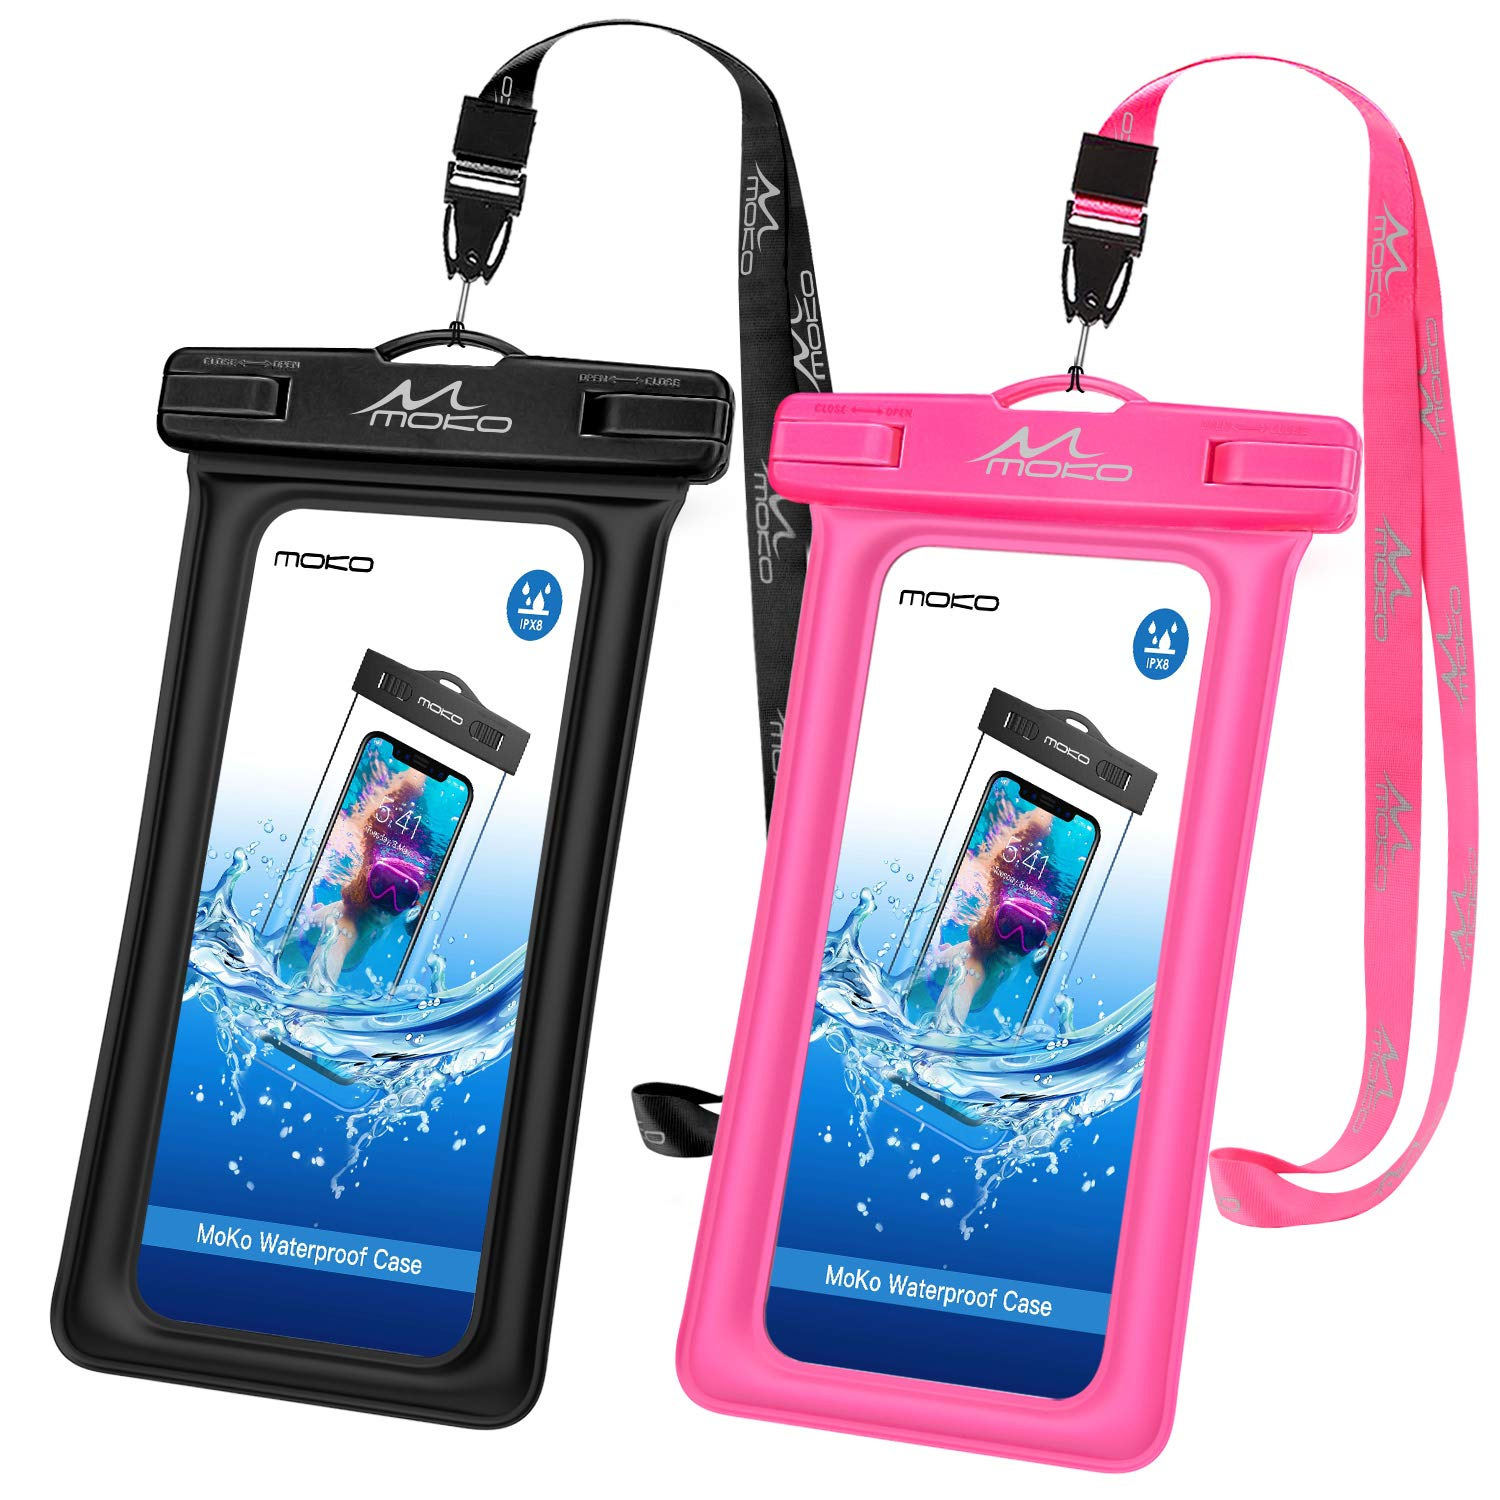 MoKo Floating Waterproof Phone Pouch [2 Pack], Floatable Phone Case Dry Bag with Lanyard Compatible with iPhone 11/11 Pro, X/Xs/Xr/Xs Max, 8/7/6 Plus, Samsung S10/S9/S8 Plus, S10e, A10E, Note 10/9/8 by MoKo